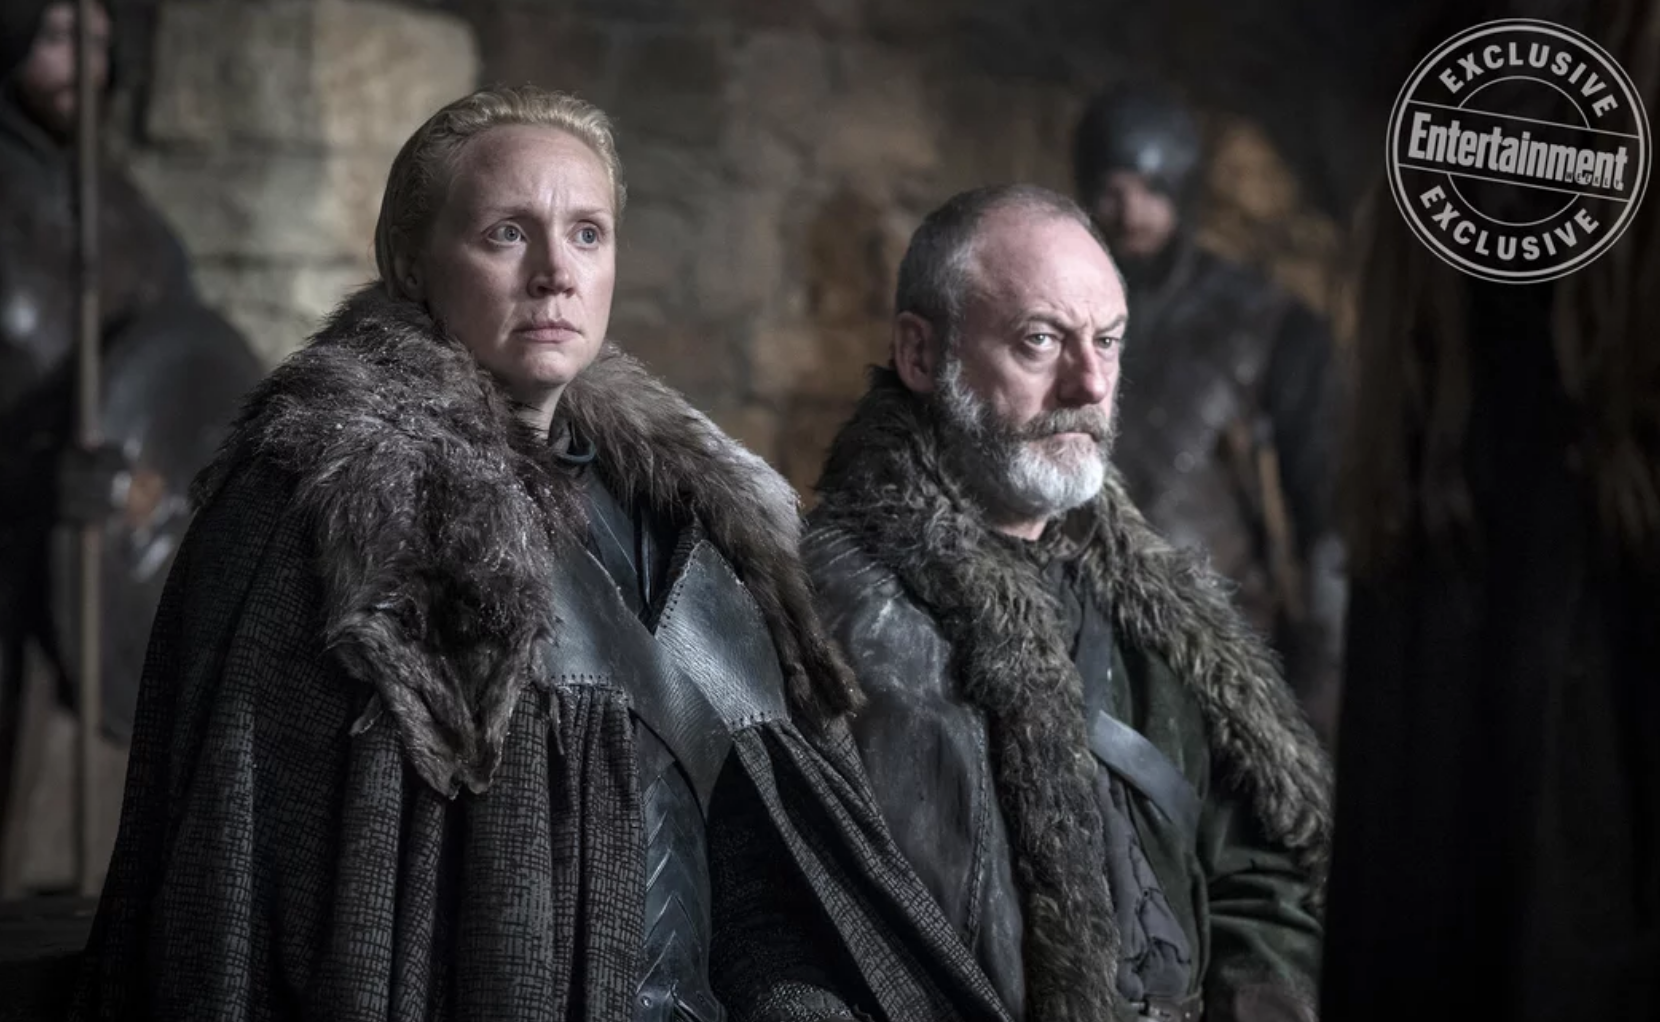 Brienne of Tarth and Davos Seaworth in Game of Thrones